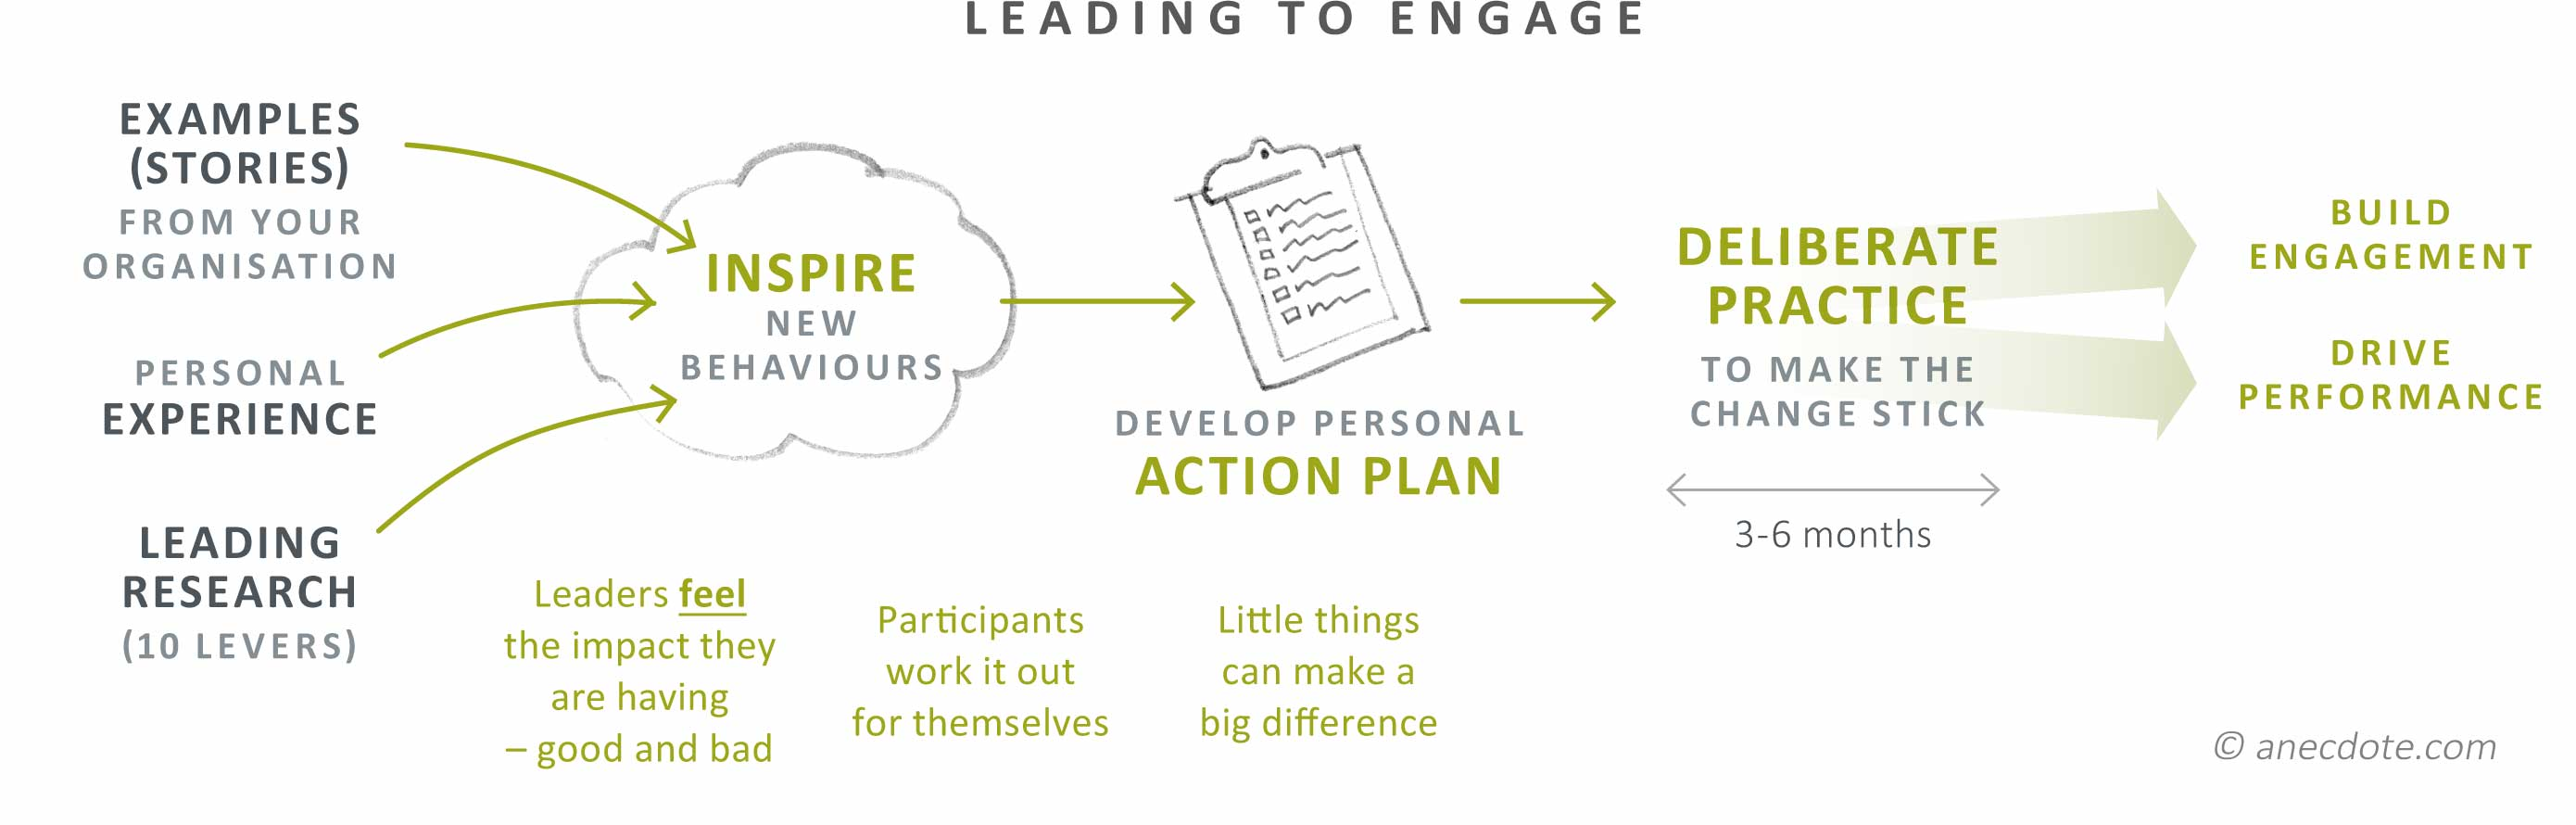 Leading to engage